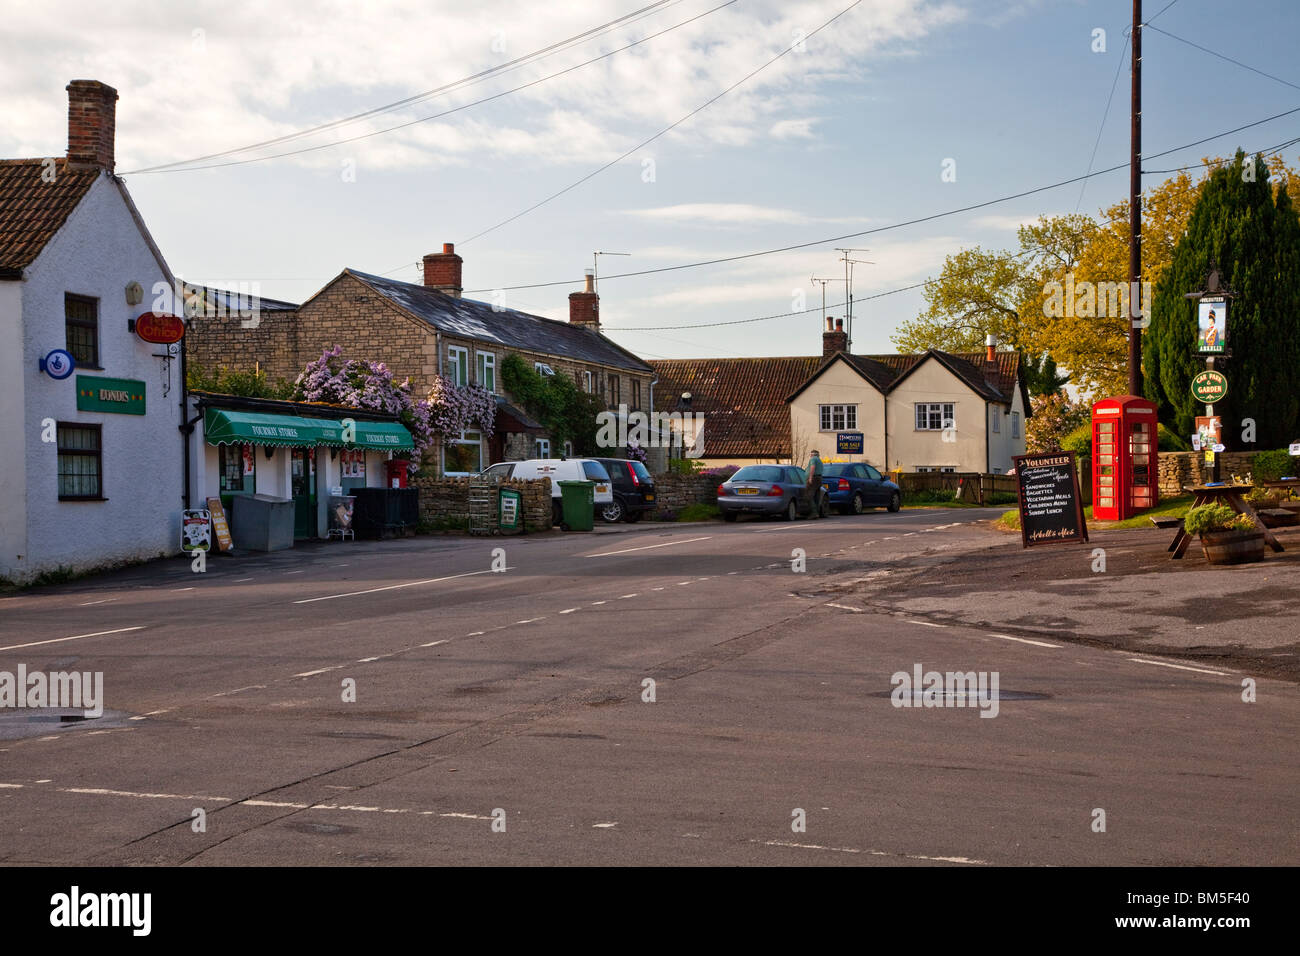 Centre of the village of Great Somerford, Wiltshire, England, UK with village shop or grocery store, red telephone - Stock Image